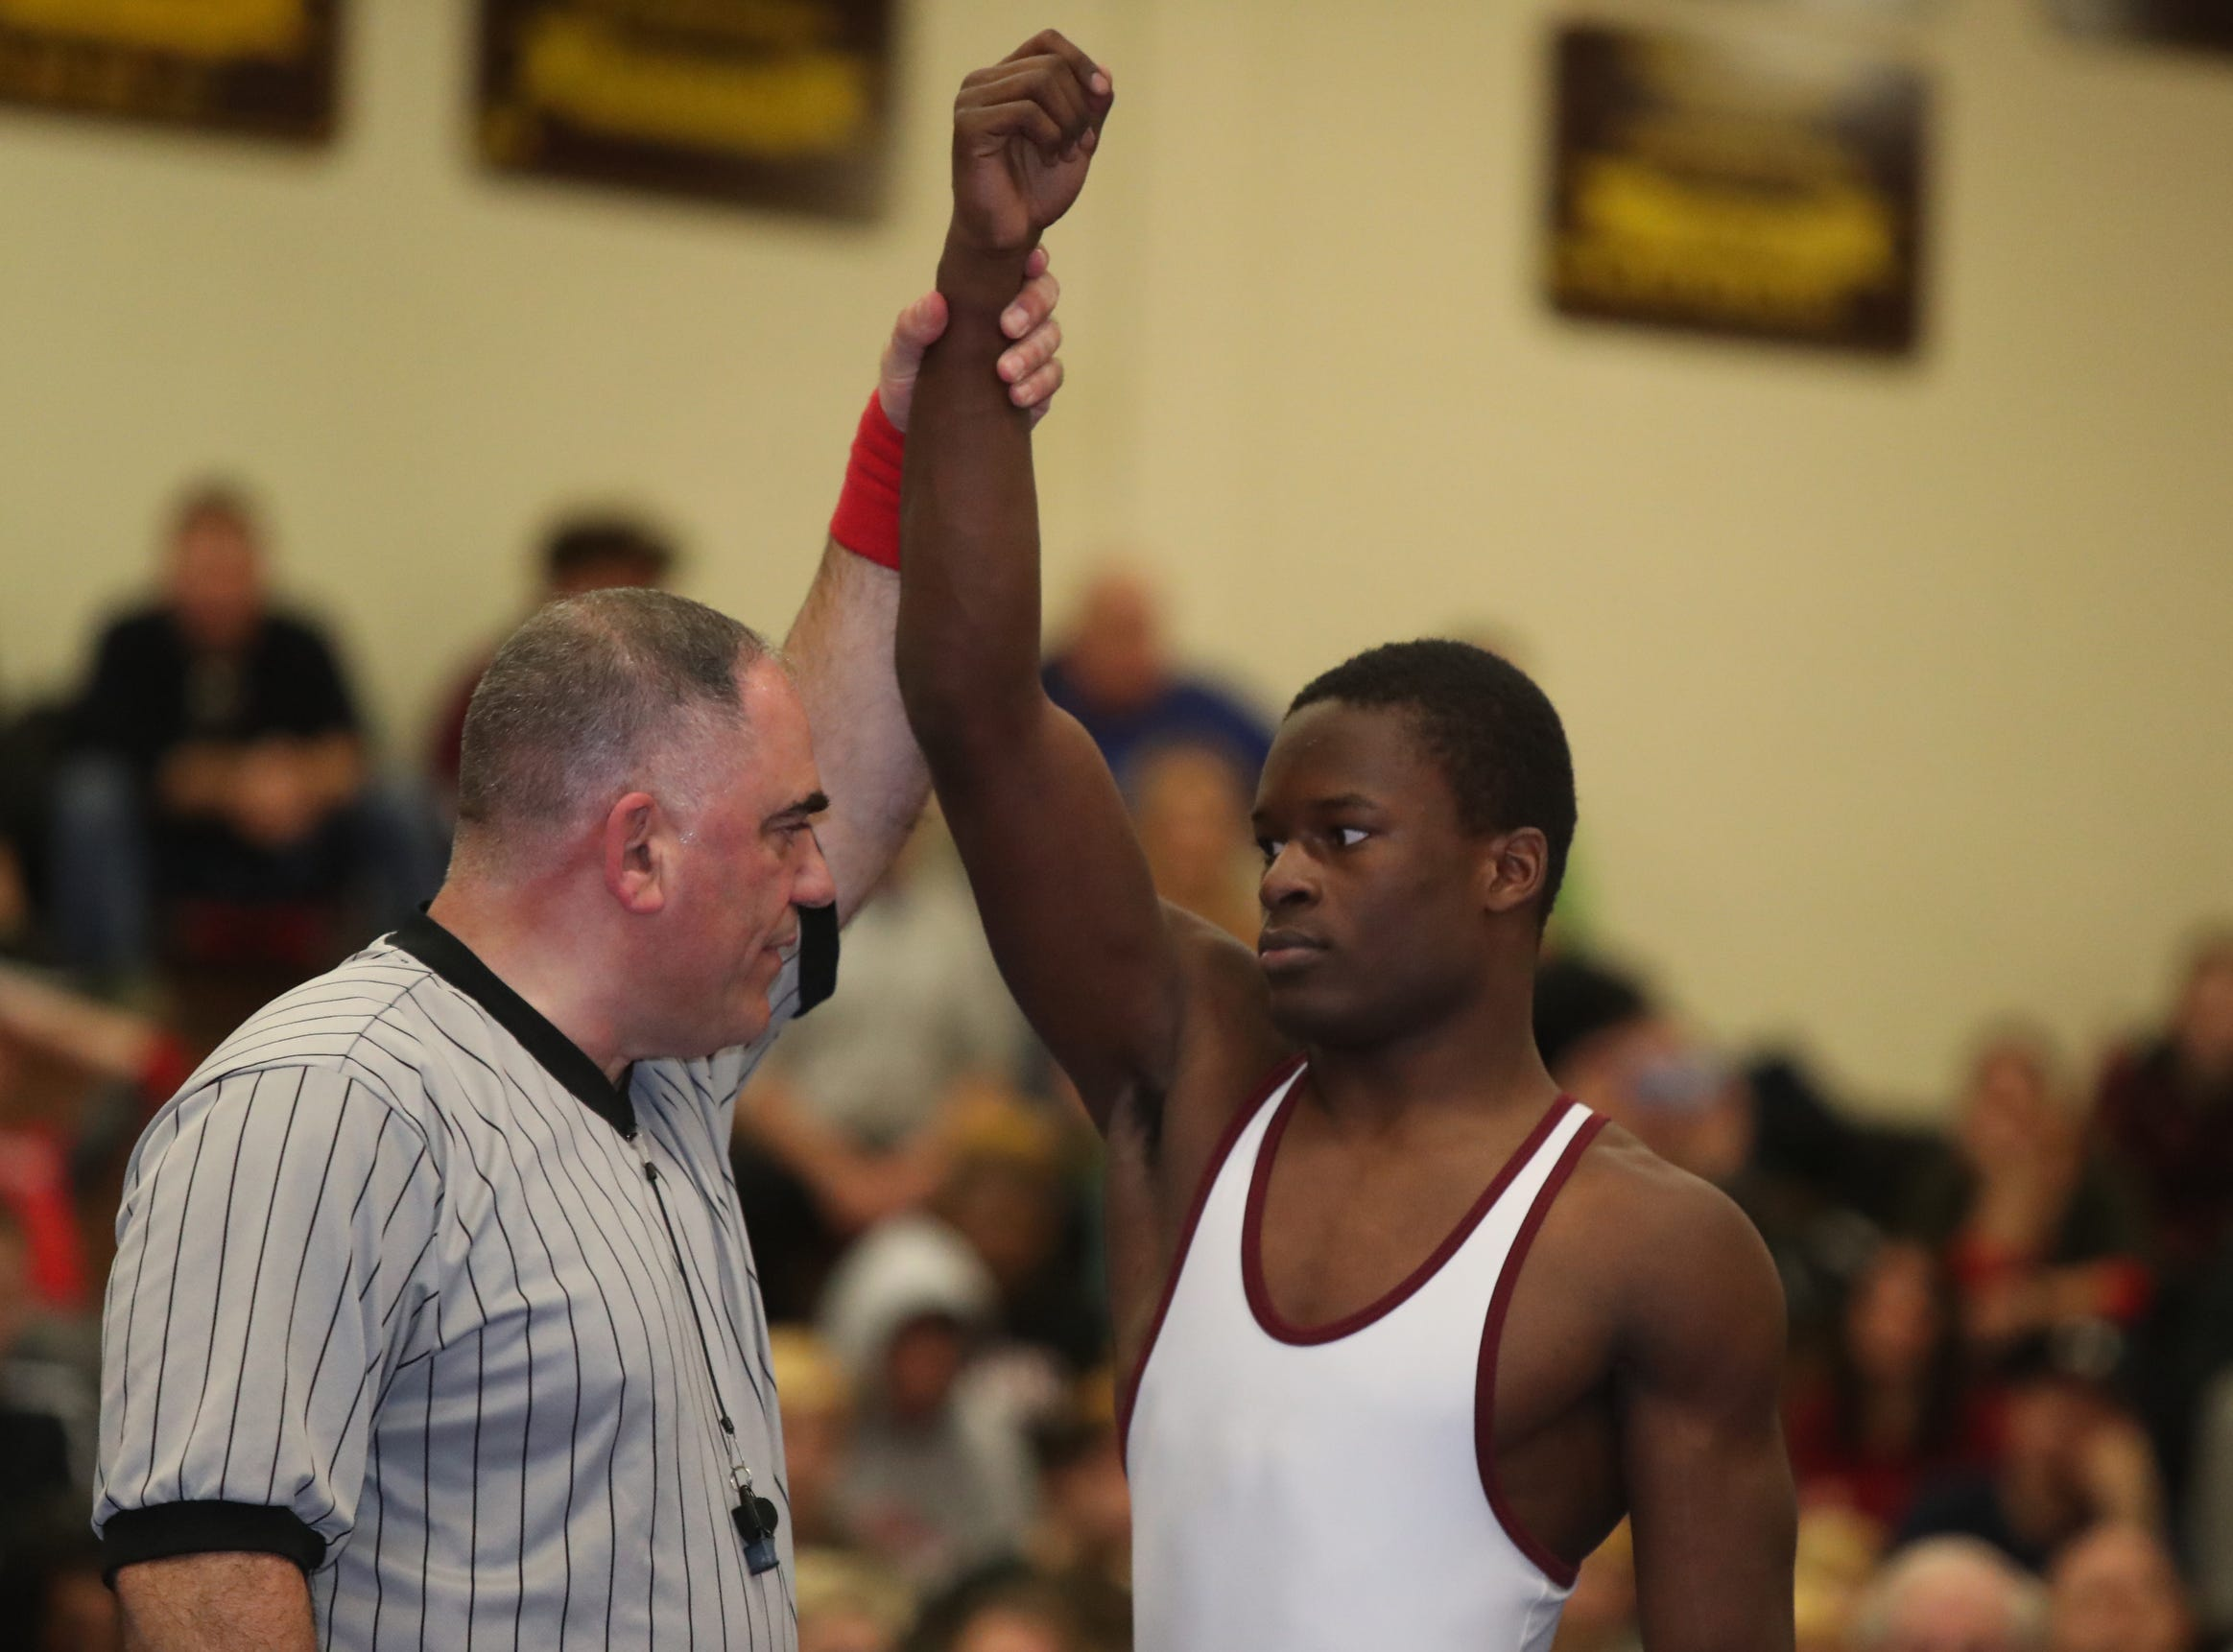 Arlington's Kawan Wills defeats Fox Lane's Lucas Friedman in the 152-pound match of the division I wrestling finals at Clarkstown South High School on Sunday, February 10, 2019.